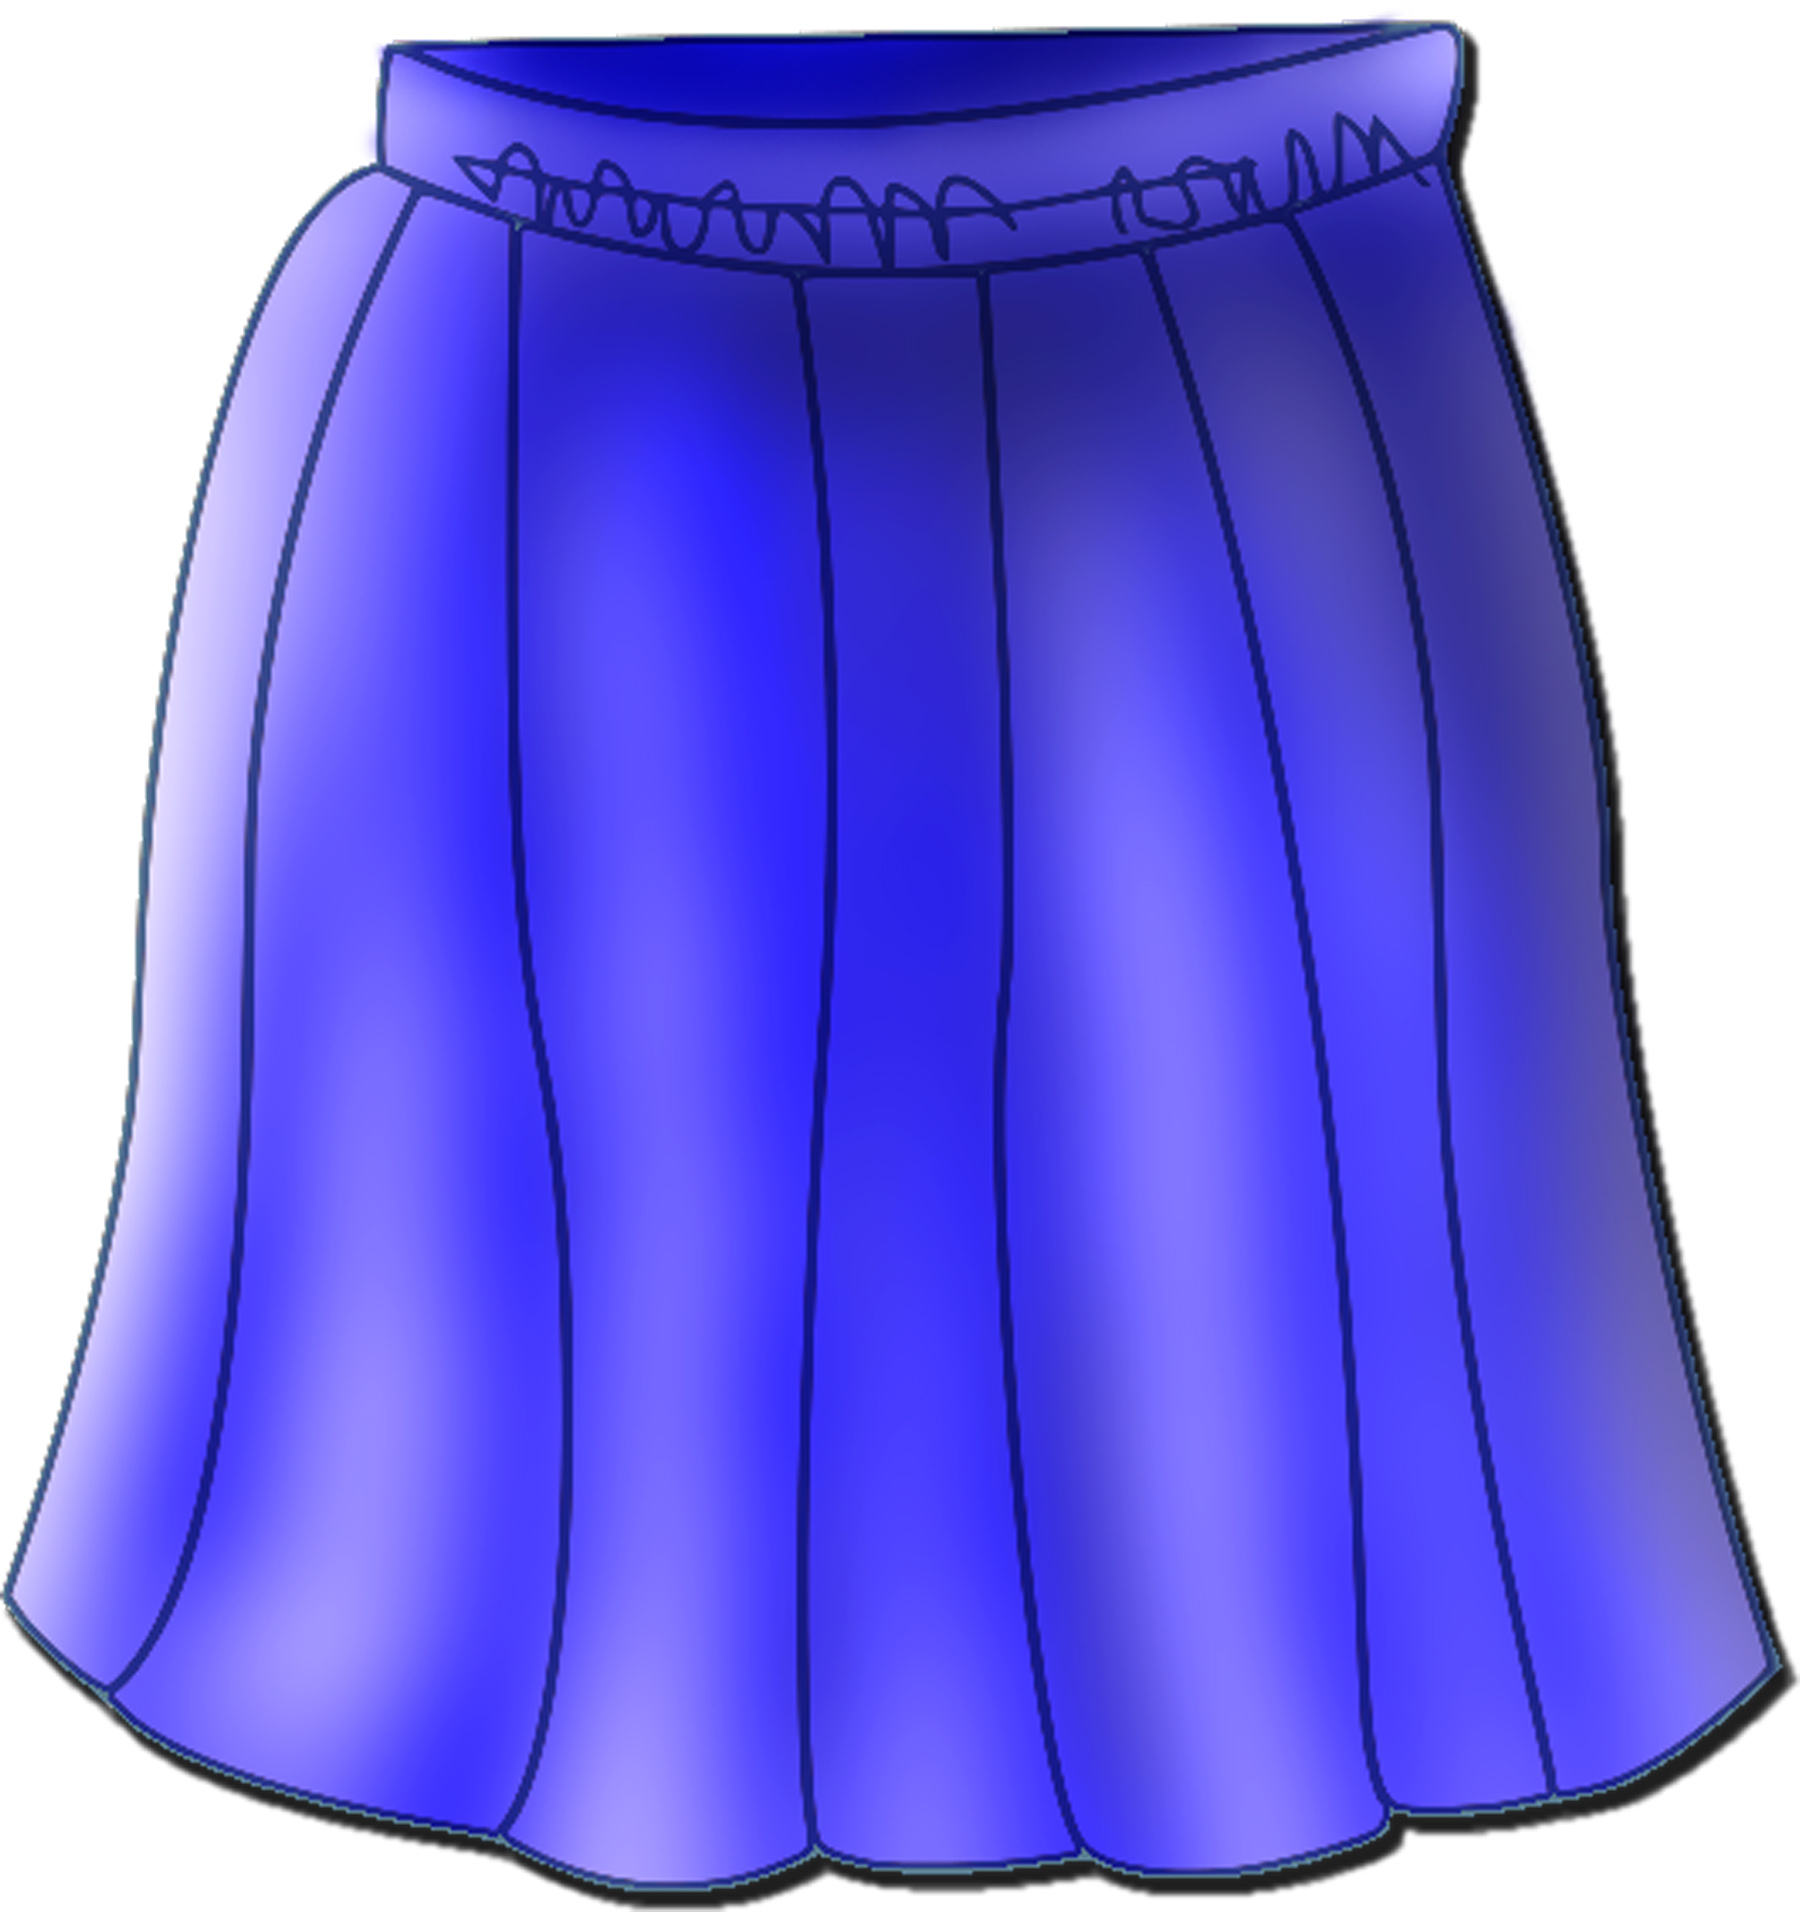 Free Skirts Cliparts, Download Free Clip Art, Free Clip Art.